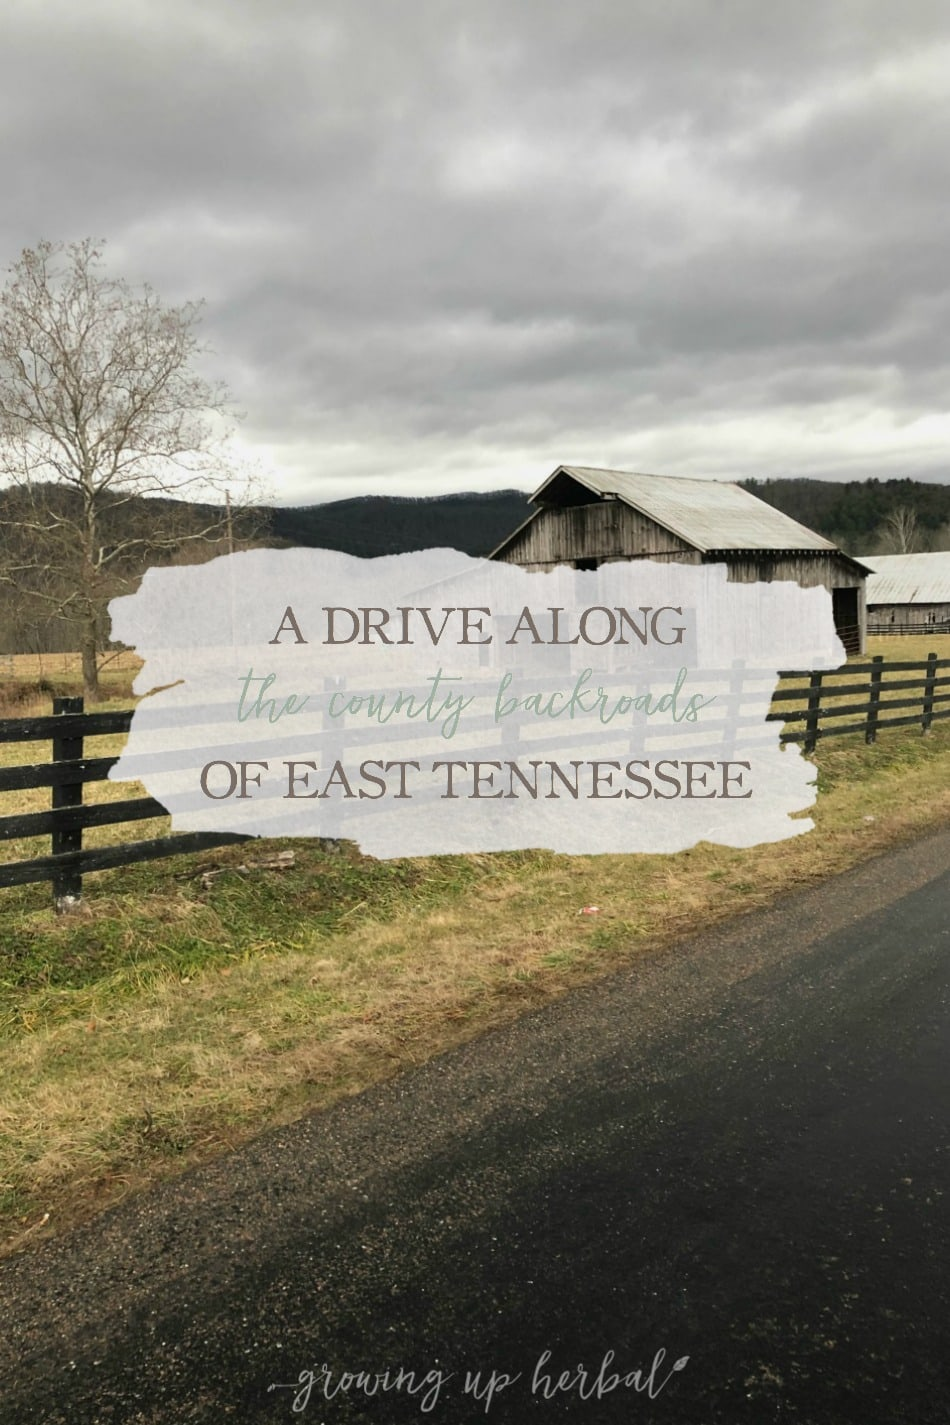 A Drive Along The County Backroads Of East Tennessee | Growing Up Herbal | Driving along the county backroads of East Tennessee is one of my favorite things to do on slow evenings.